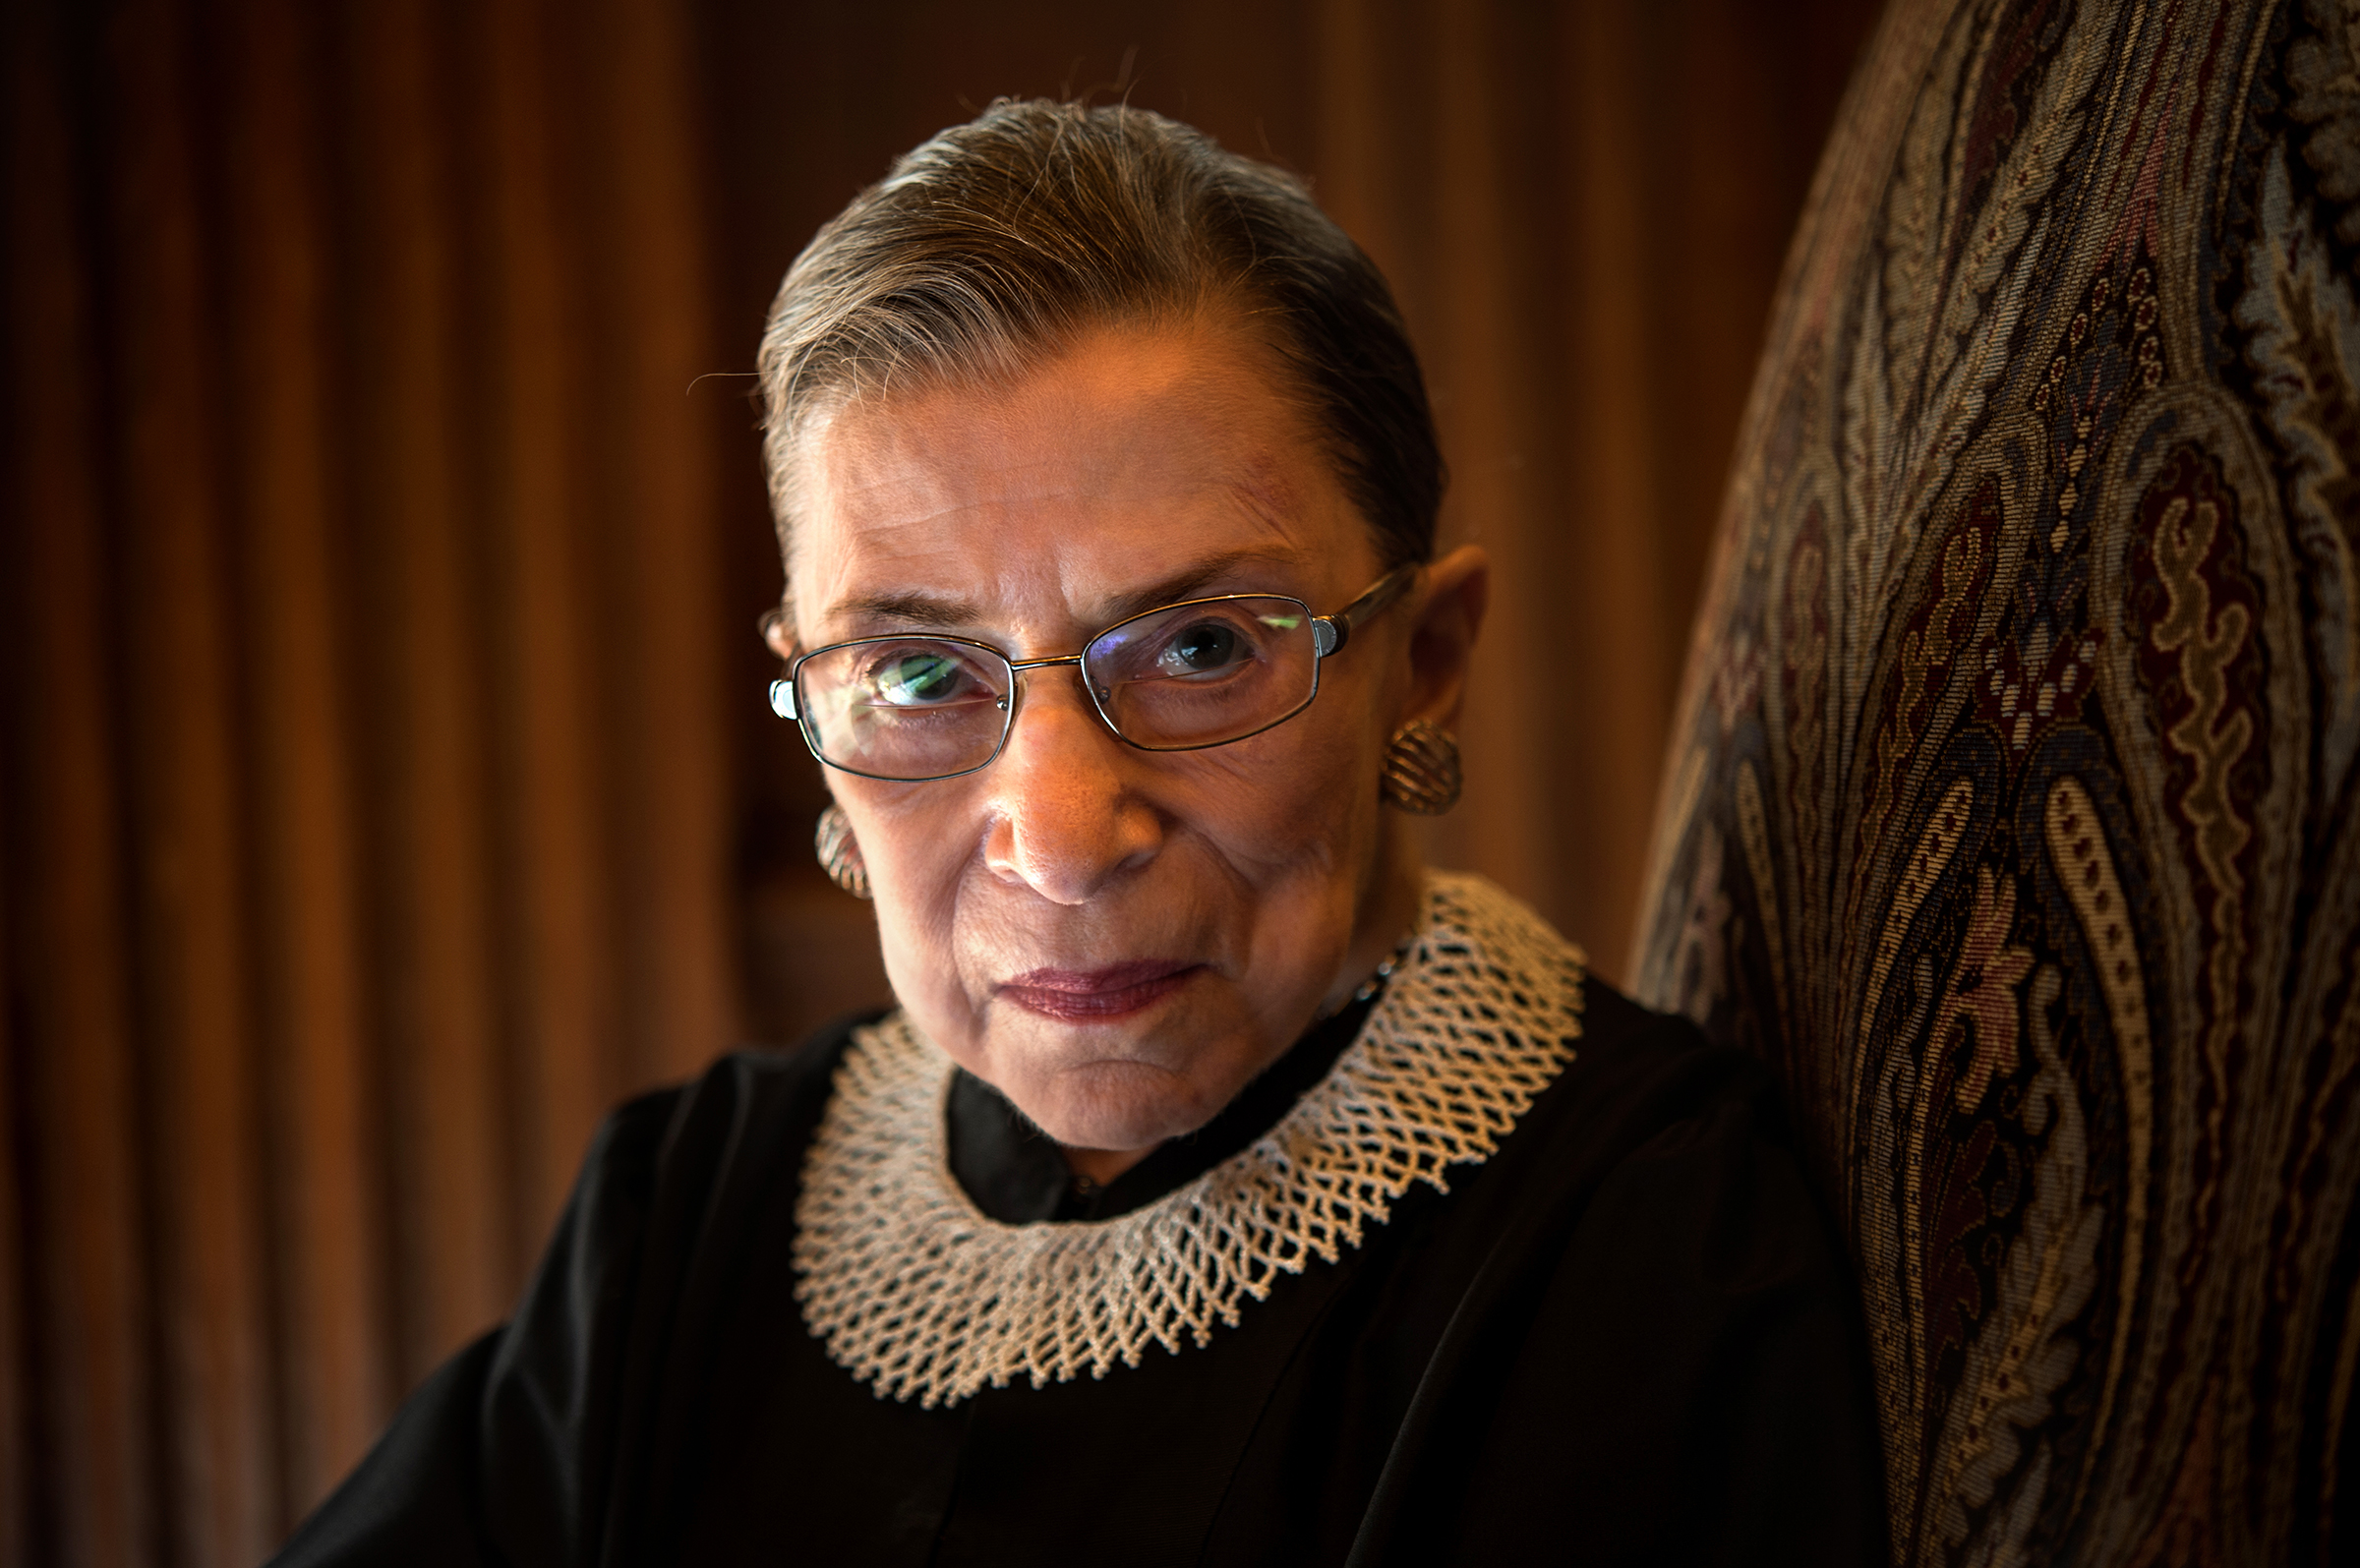 Supreme Court Justice Ruth Bader Ginsburg, celebrating her 20th anniversary on the bench, photographed on Aug. 30, 2013.